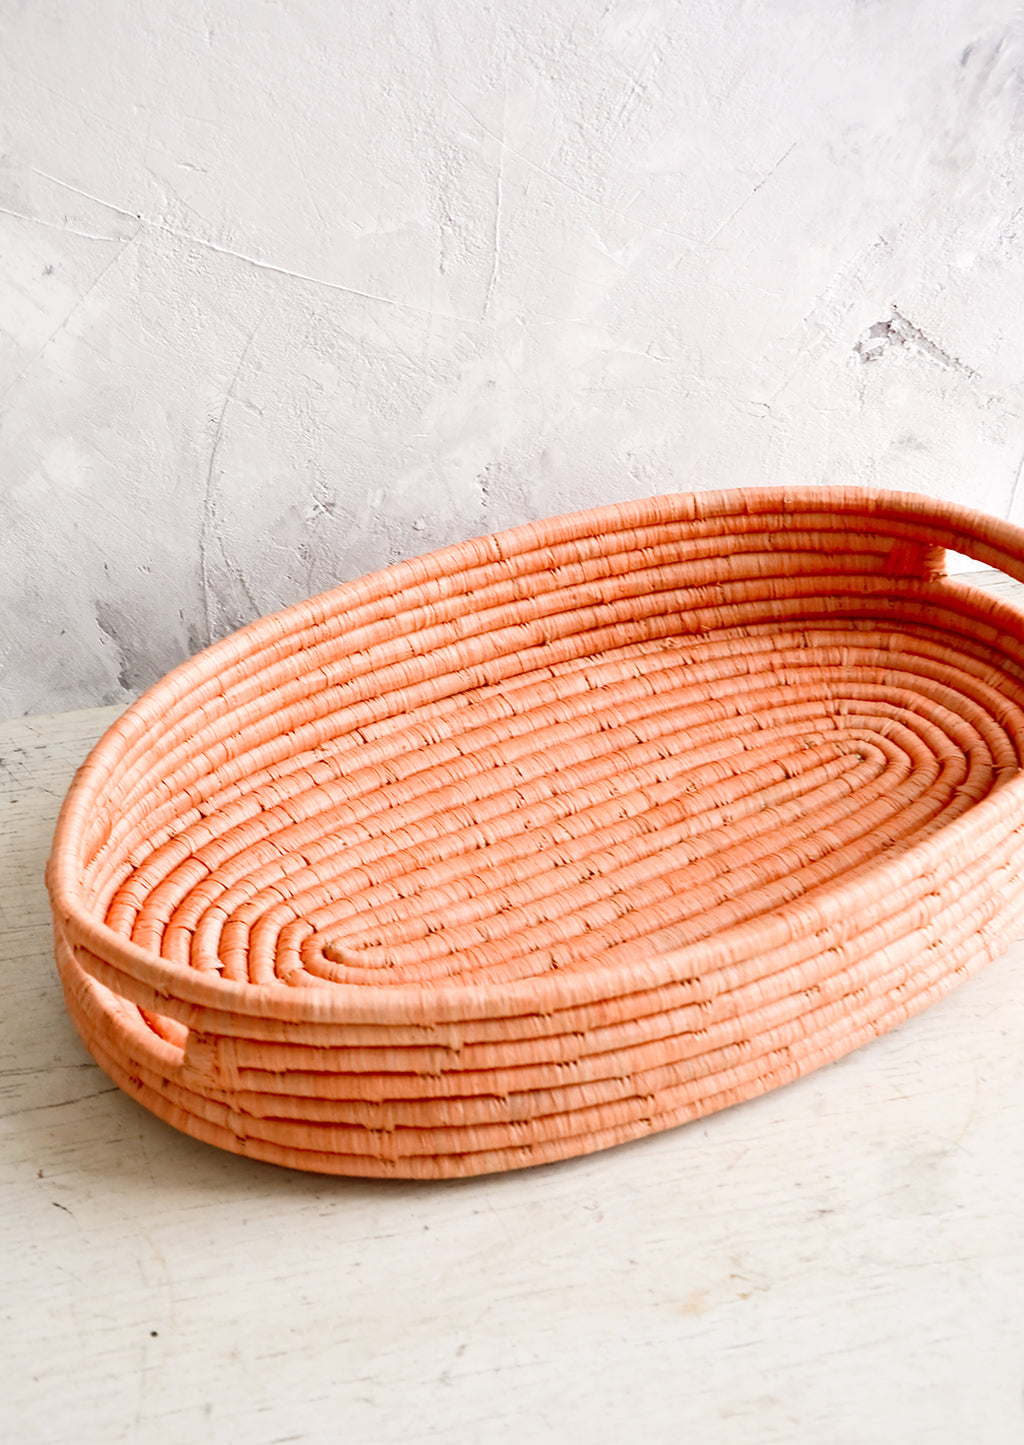 1: Oval shaped, shallow basket woven in peach raffia with cutout handles at sides.